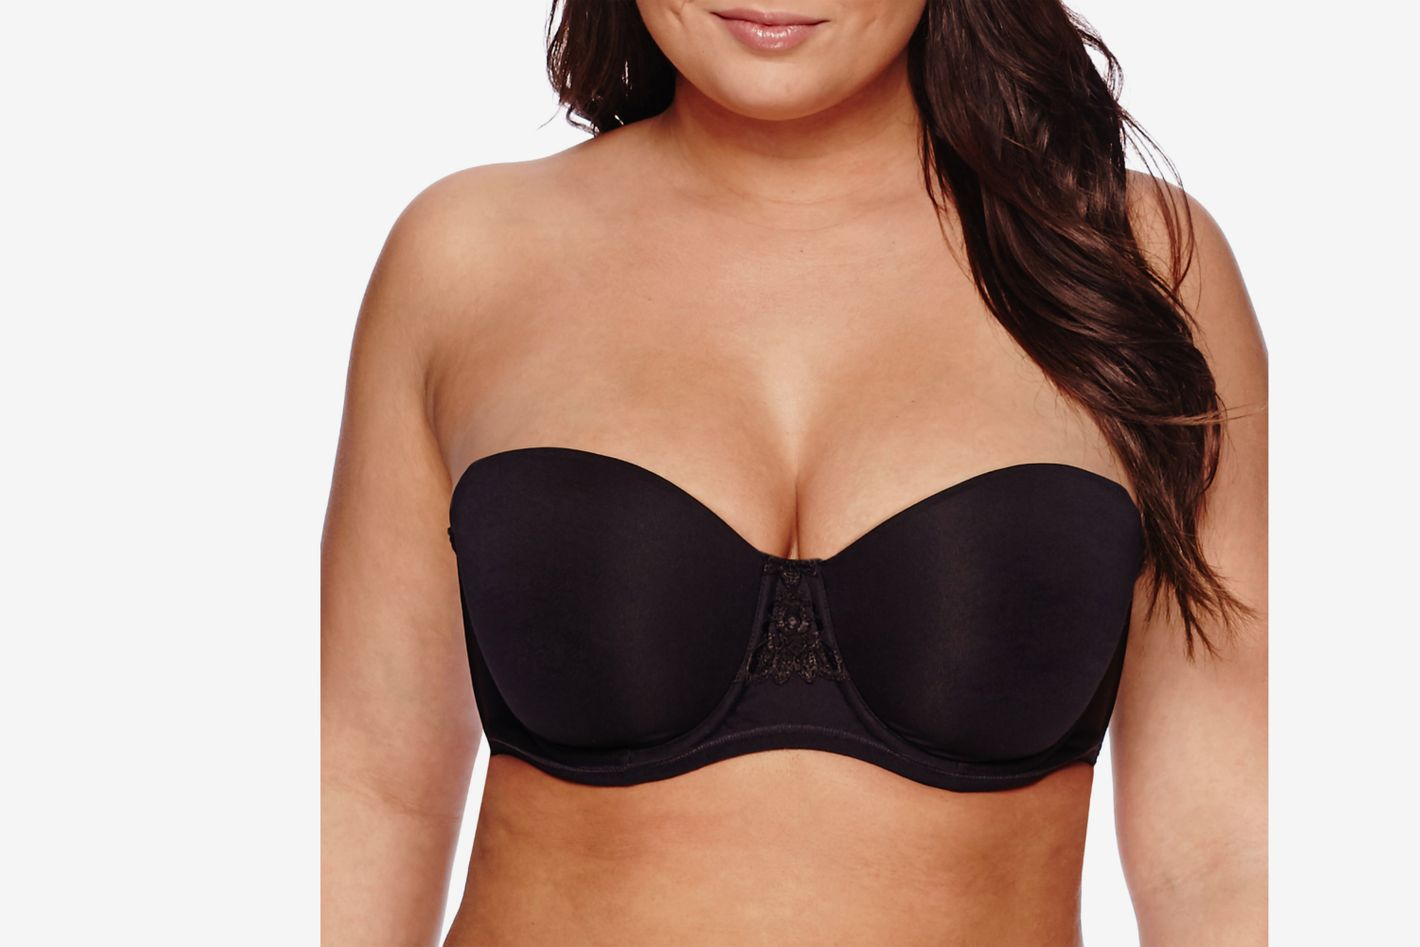 99c9a93925 23 Best Strapless Bras You Can Buy in 2018